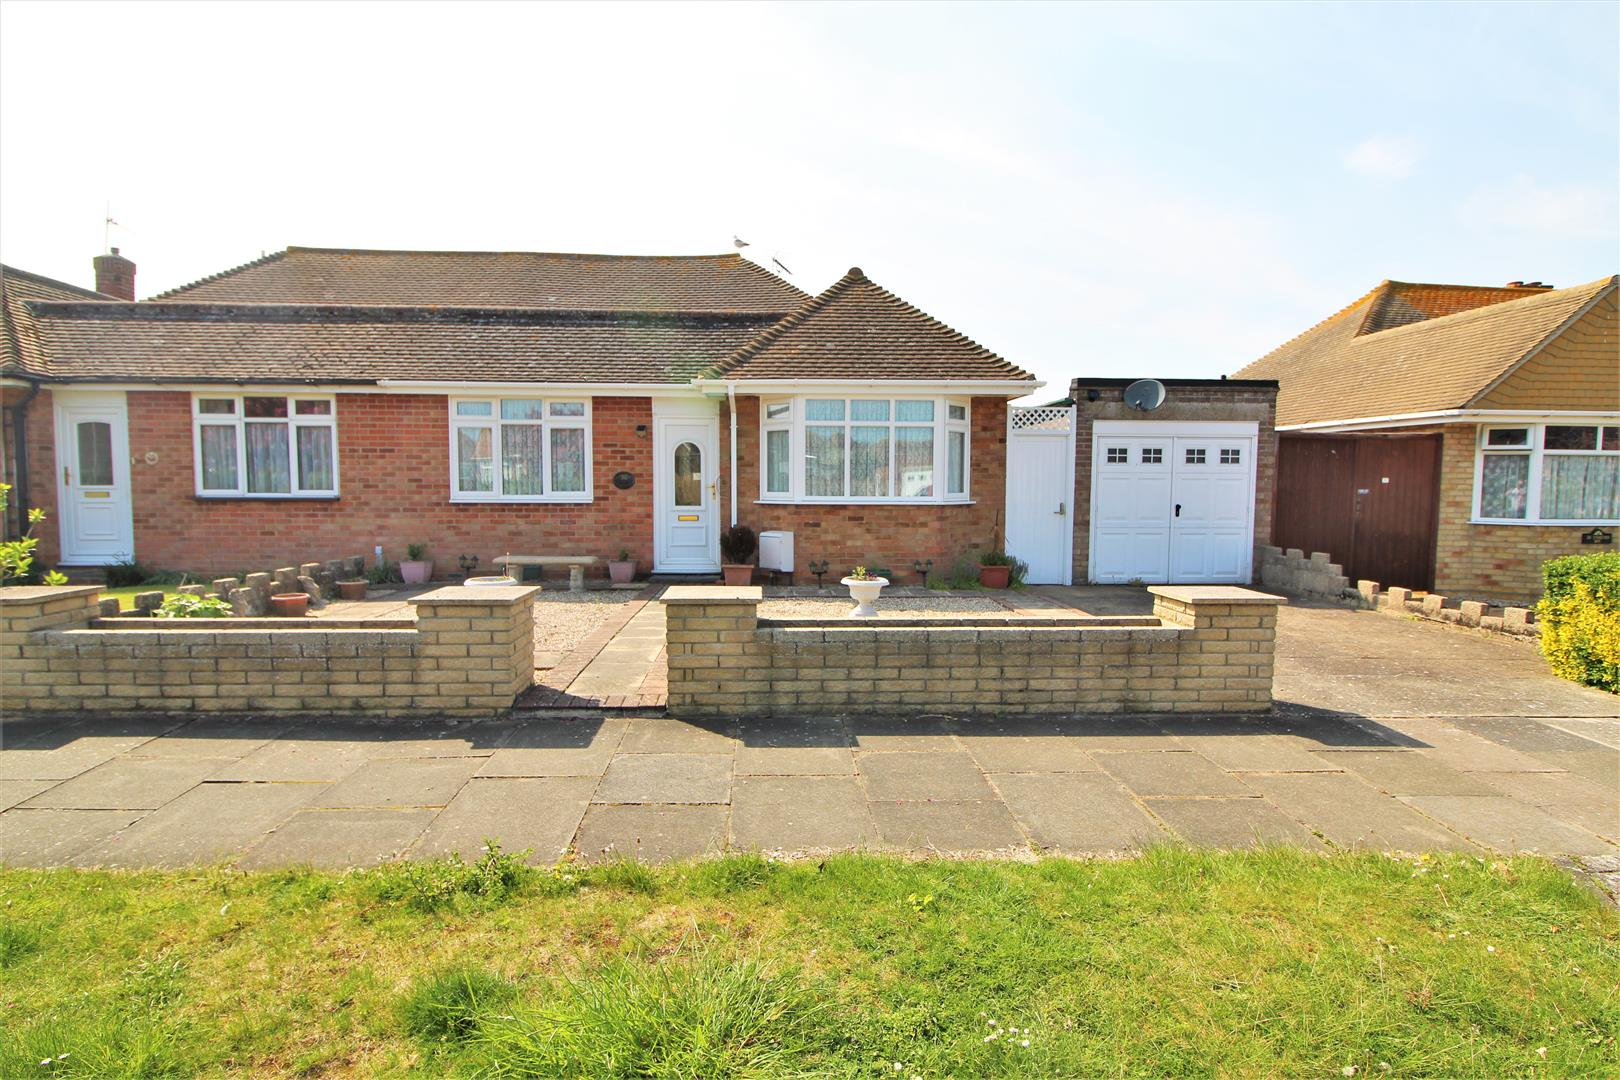 Stansted Way, Frinton-On-Sea, Essex, CO13 0BG